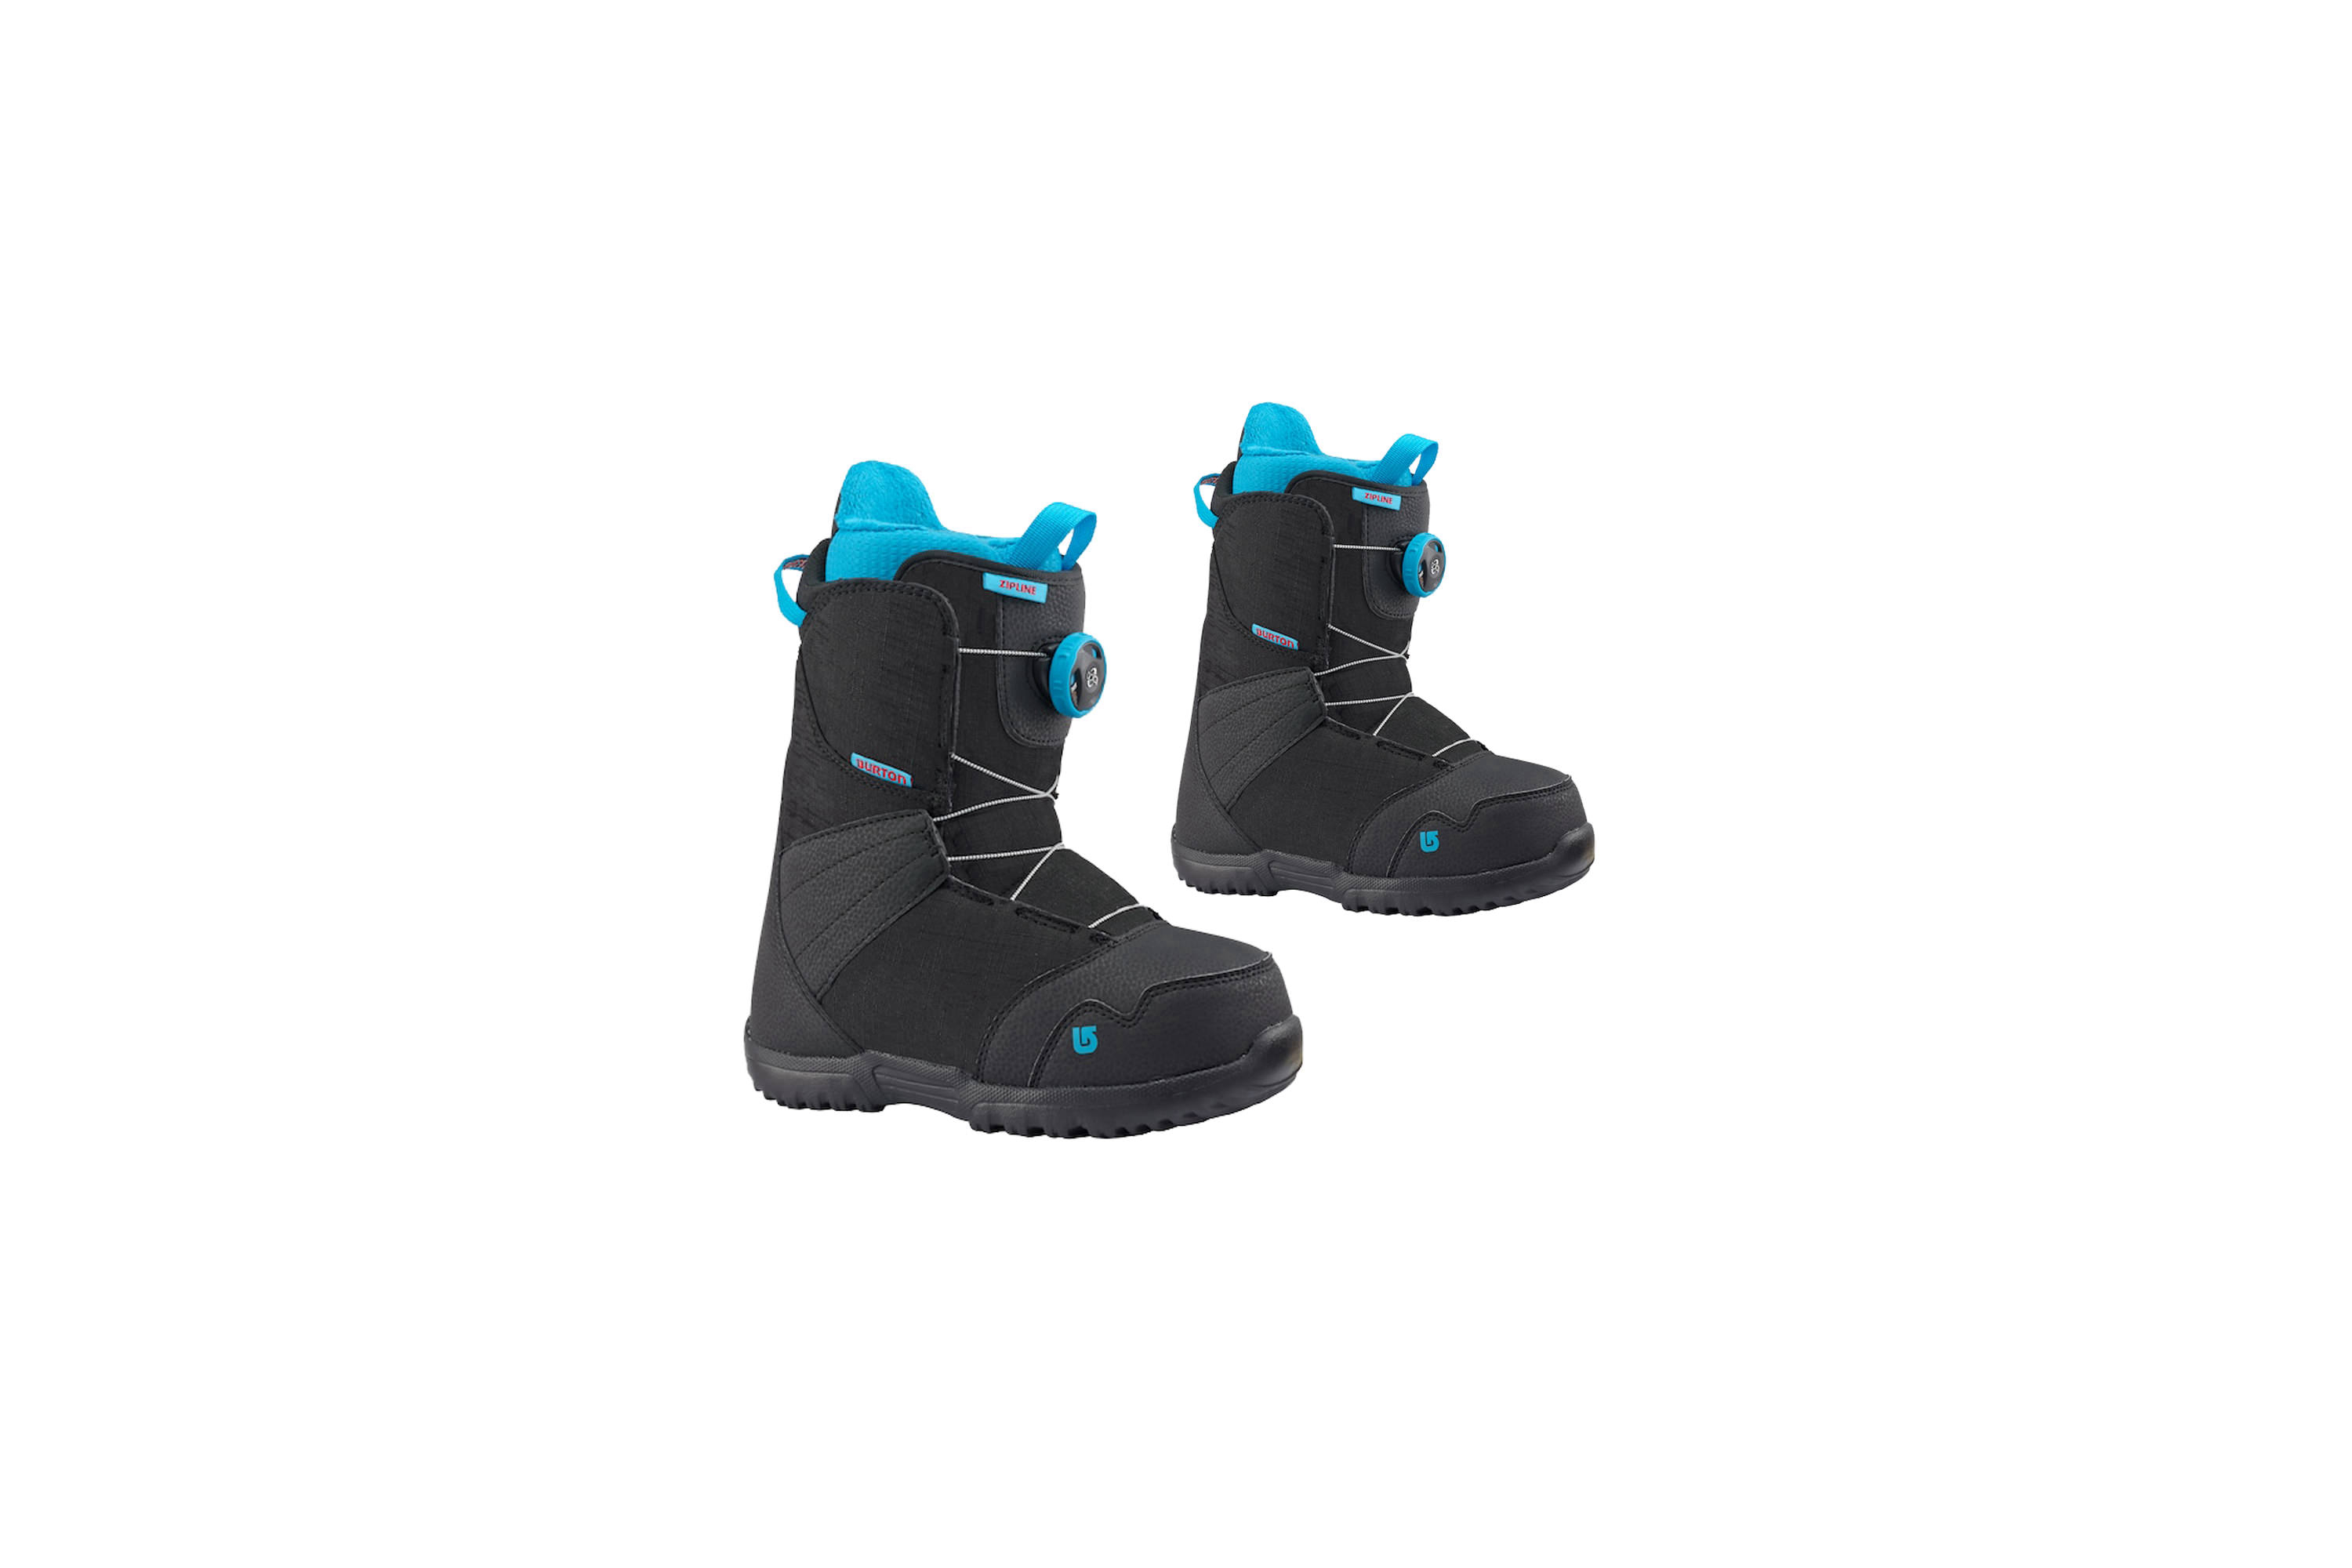 junior and kids snowboard boots for rent, Stoked sports shop